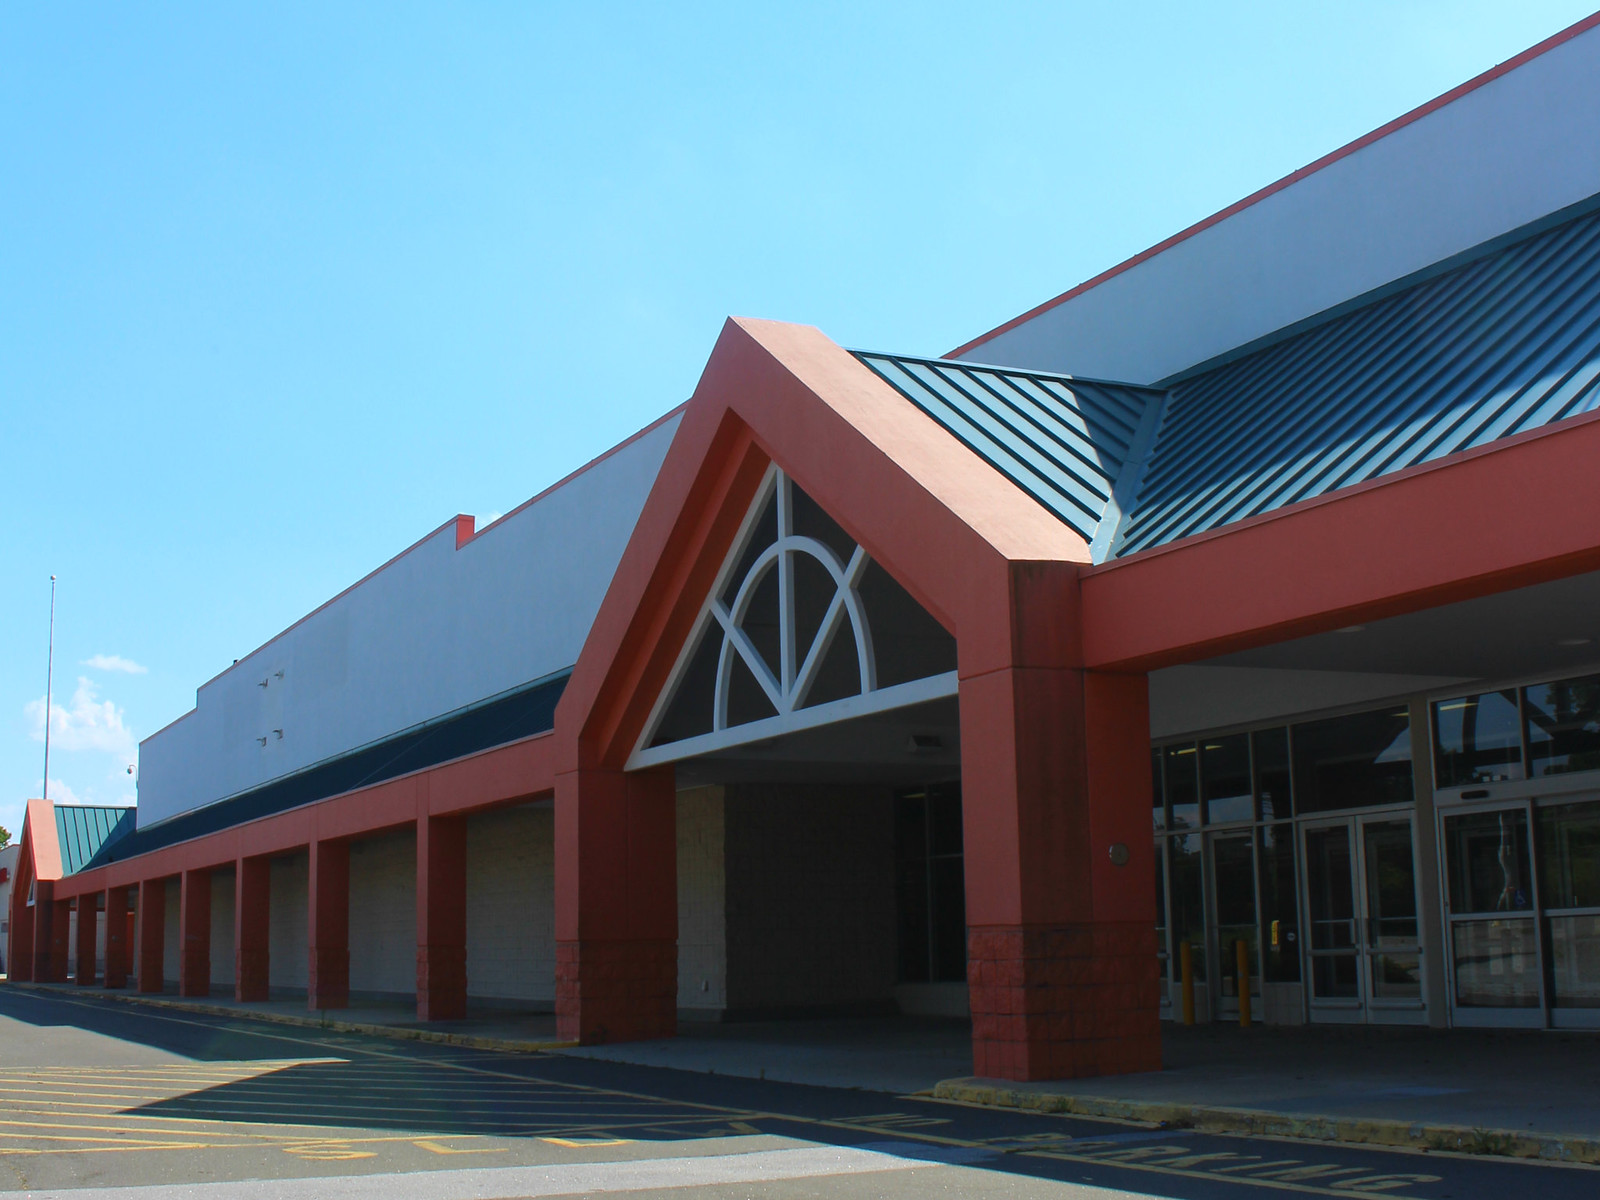 Former Super Kmart -- Garner, North Carolina